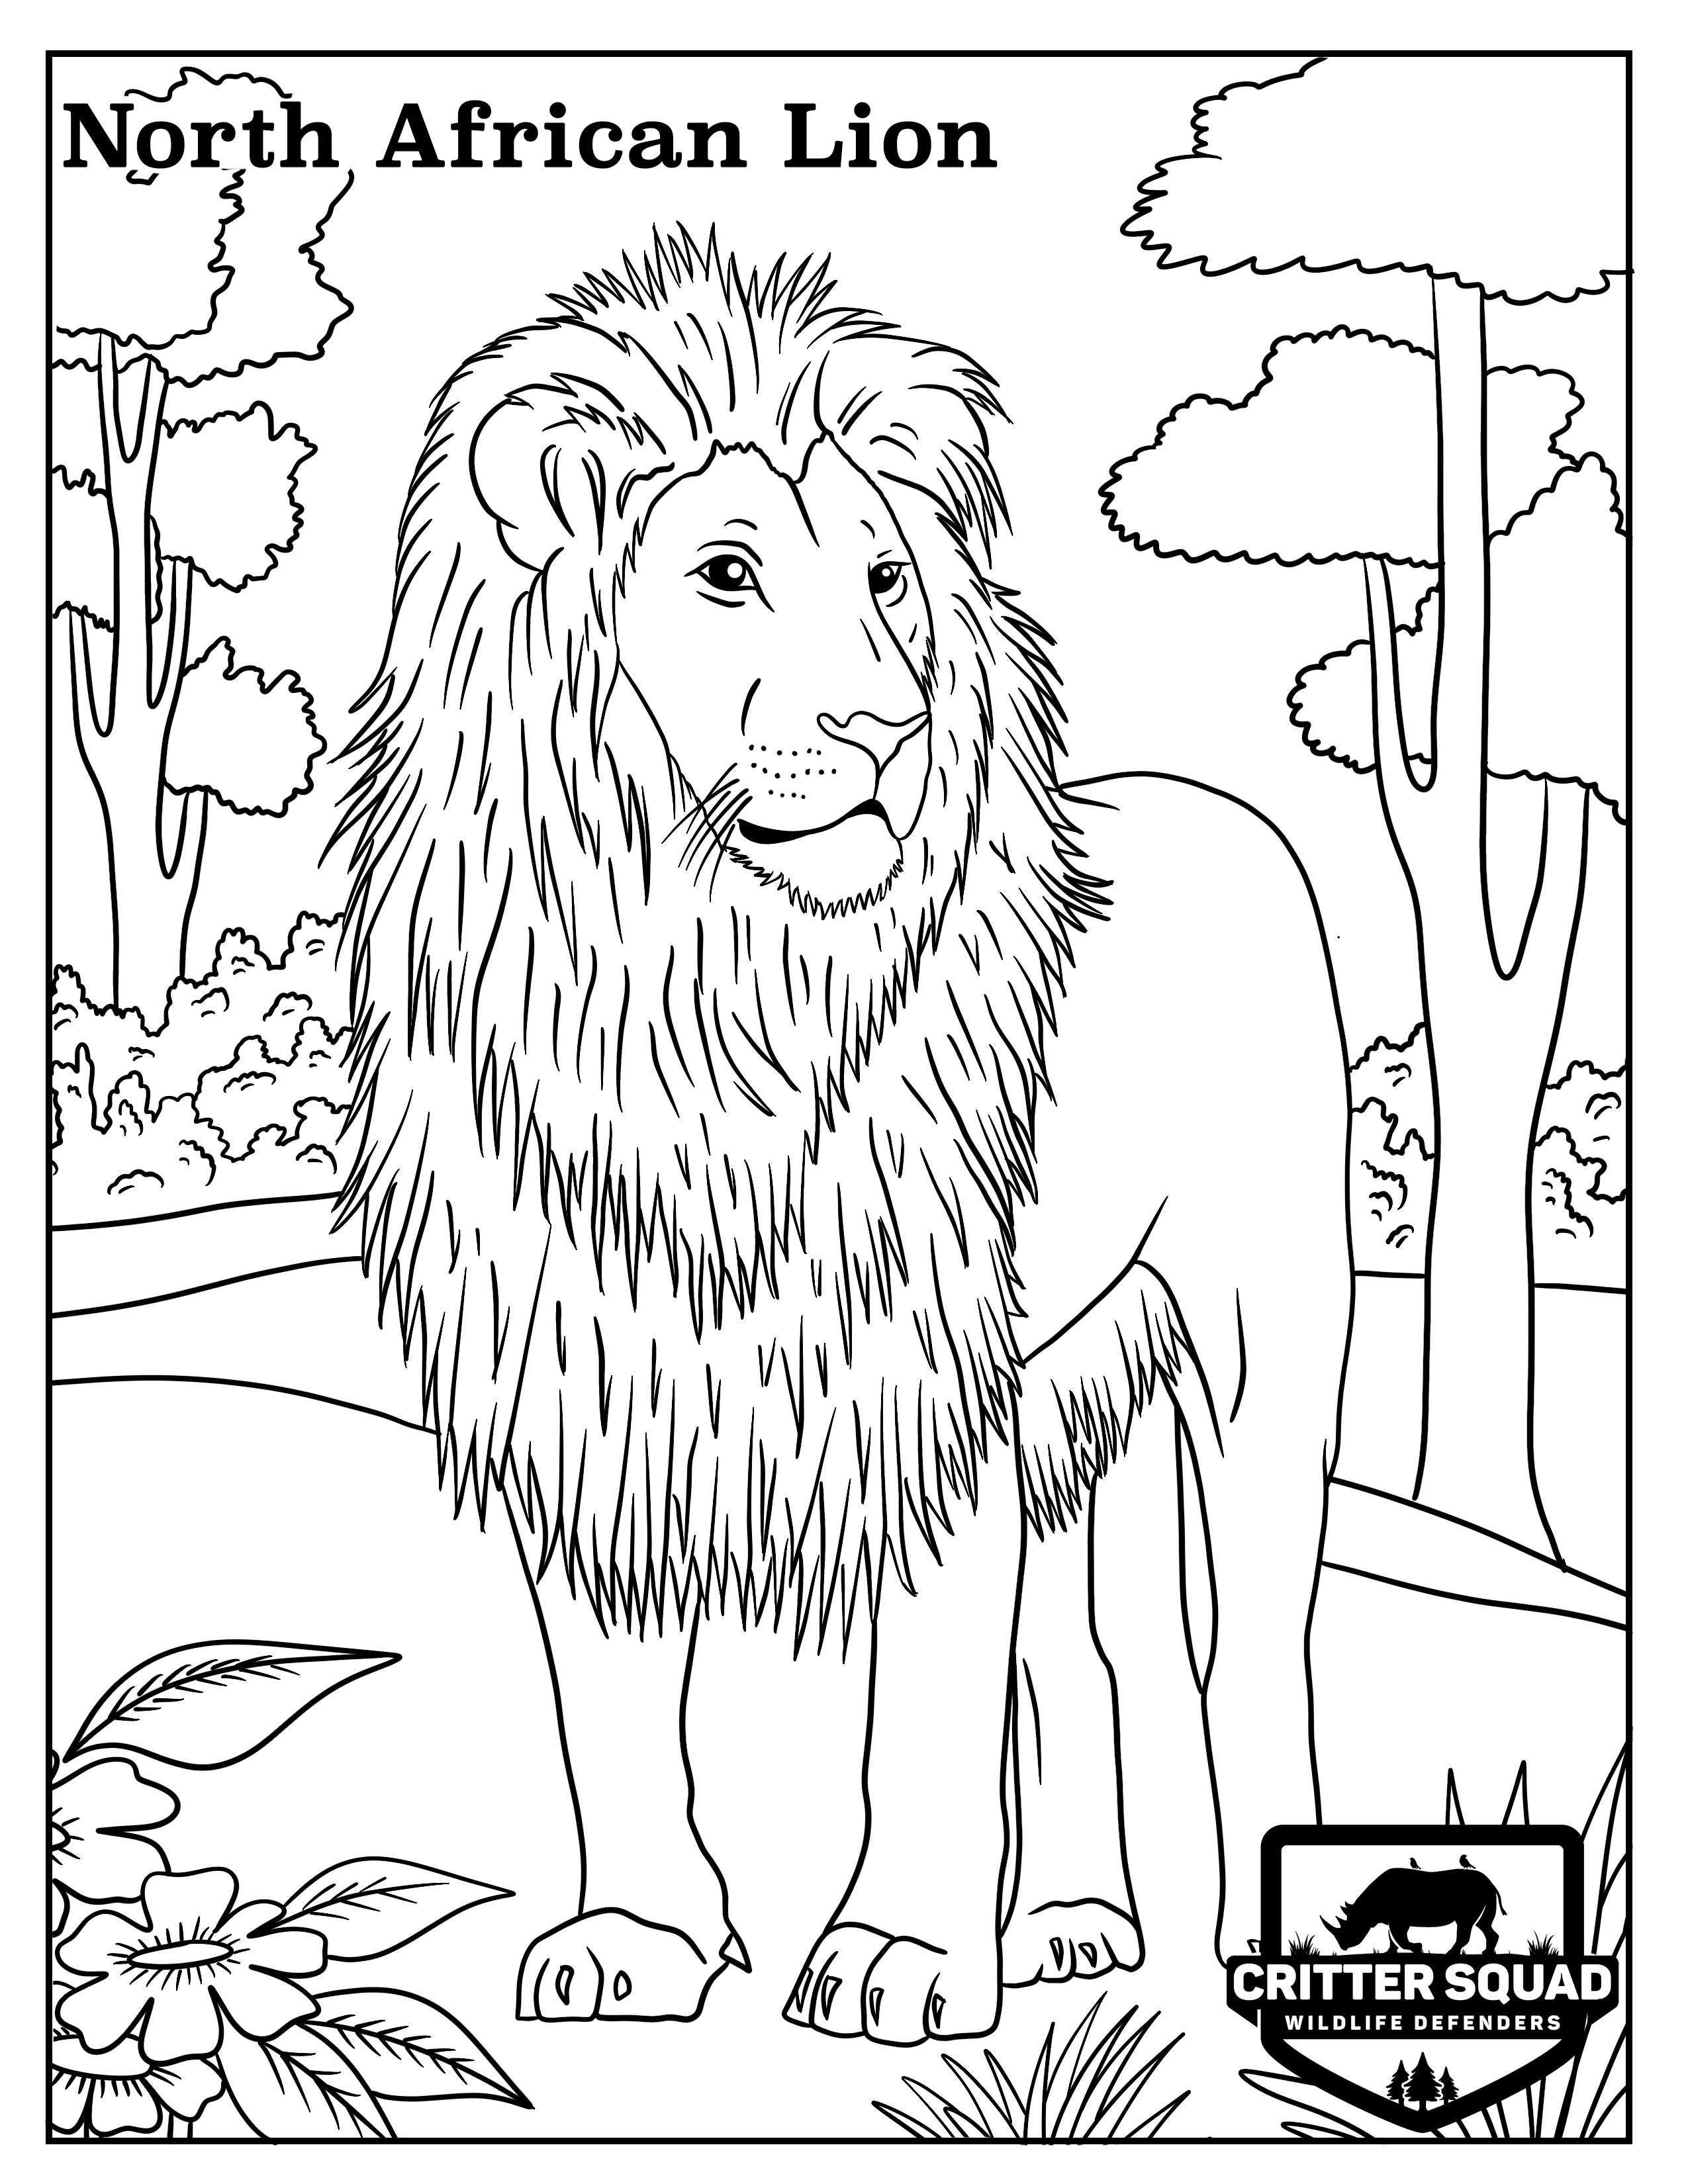 picture of a lion to color lion coloring pages getcoloringpagescom lion to color picture of a